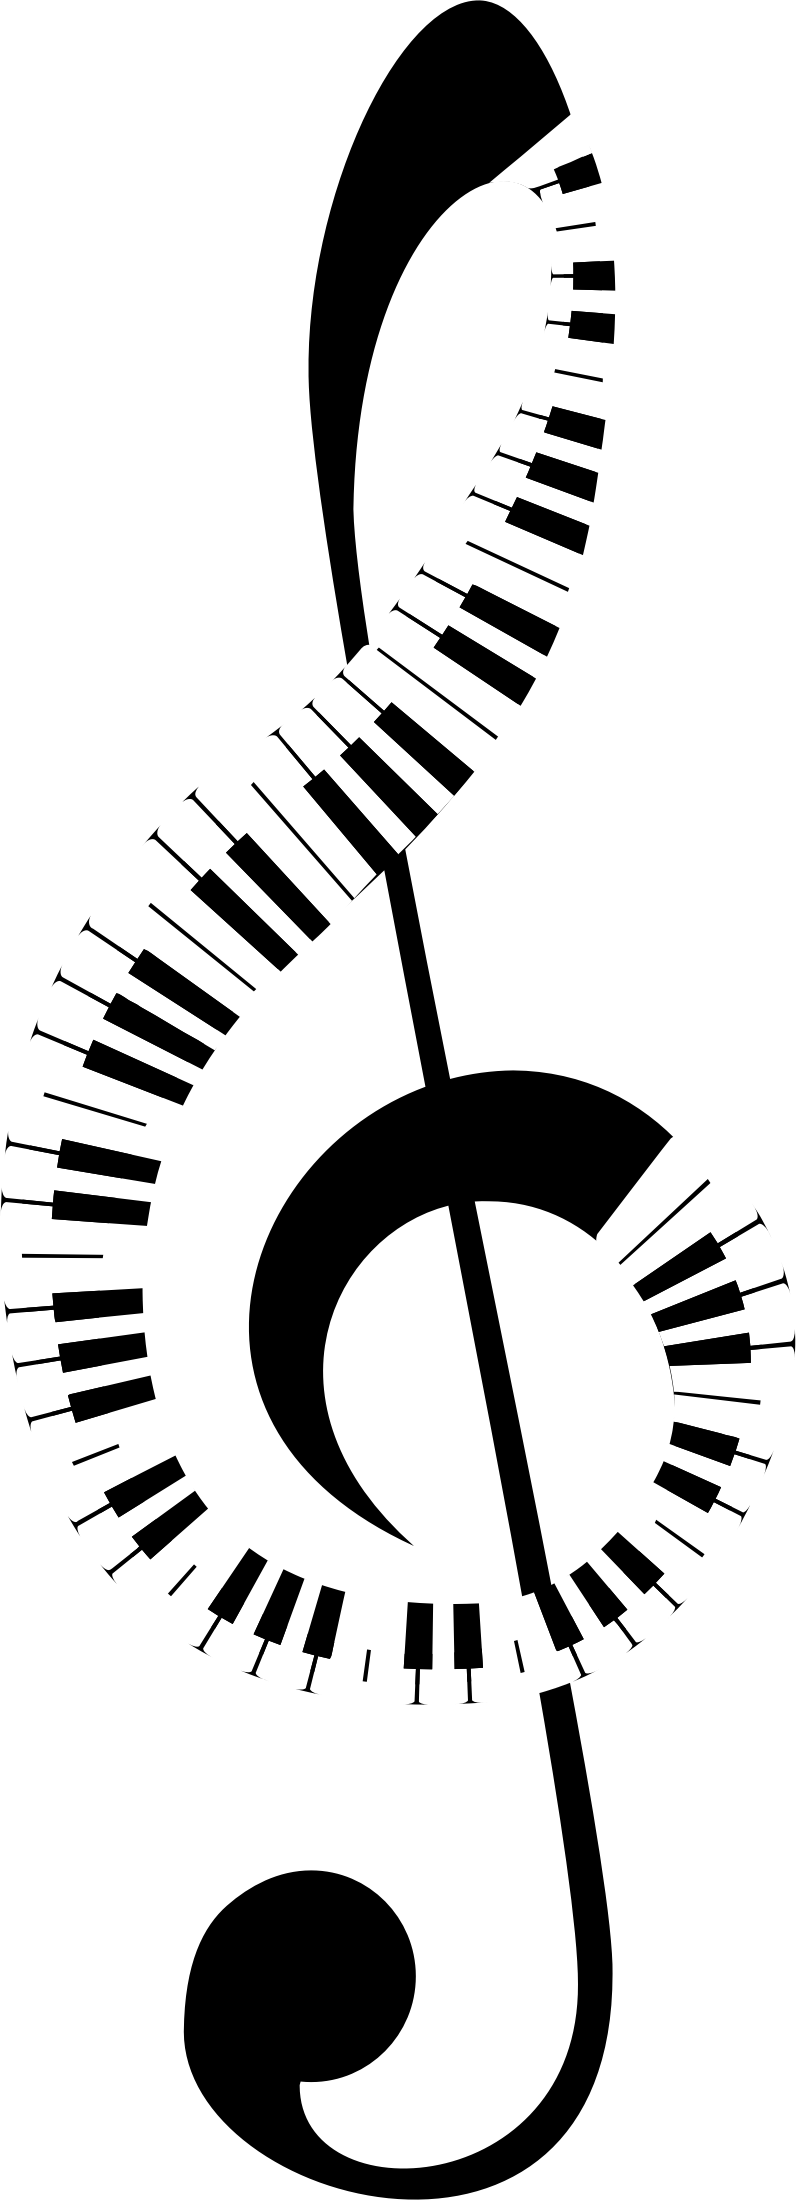 Clef keyboard recreation no. Piano clipart abstract